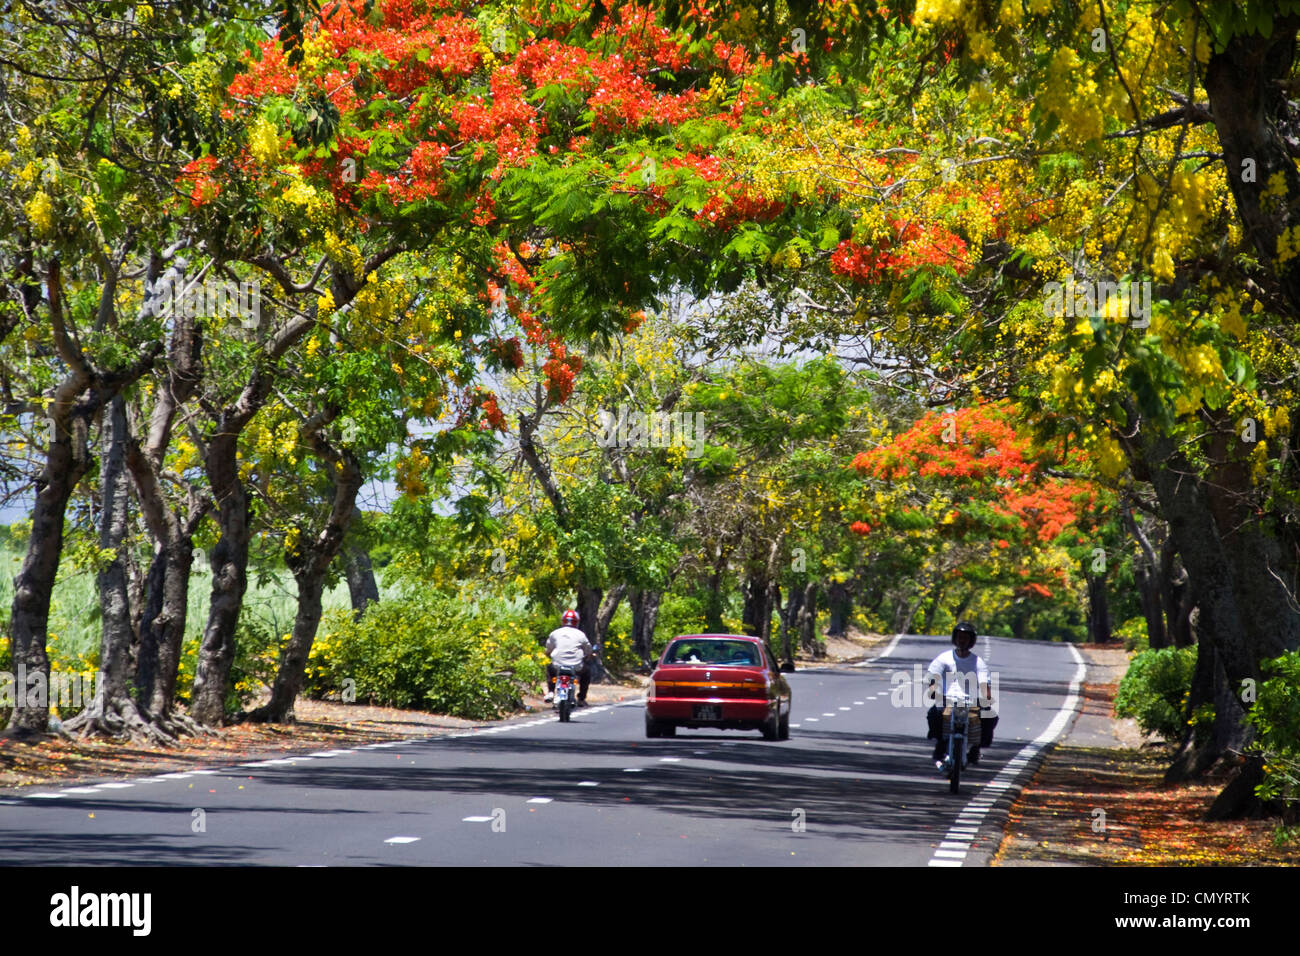 Tree Alley with  Flamboyant, Royal Poinciana, and Lamburnum trees with yellow flowers, Mauritius, Africa - Stock Image